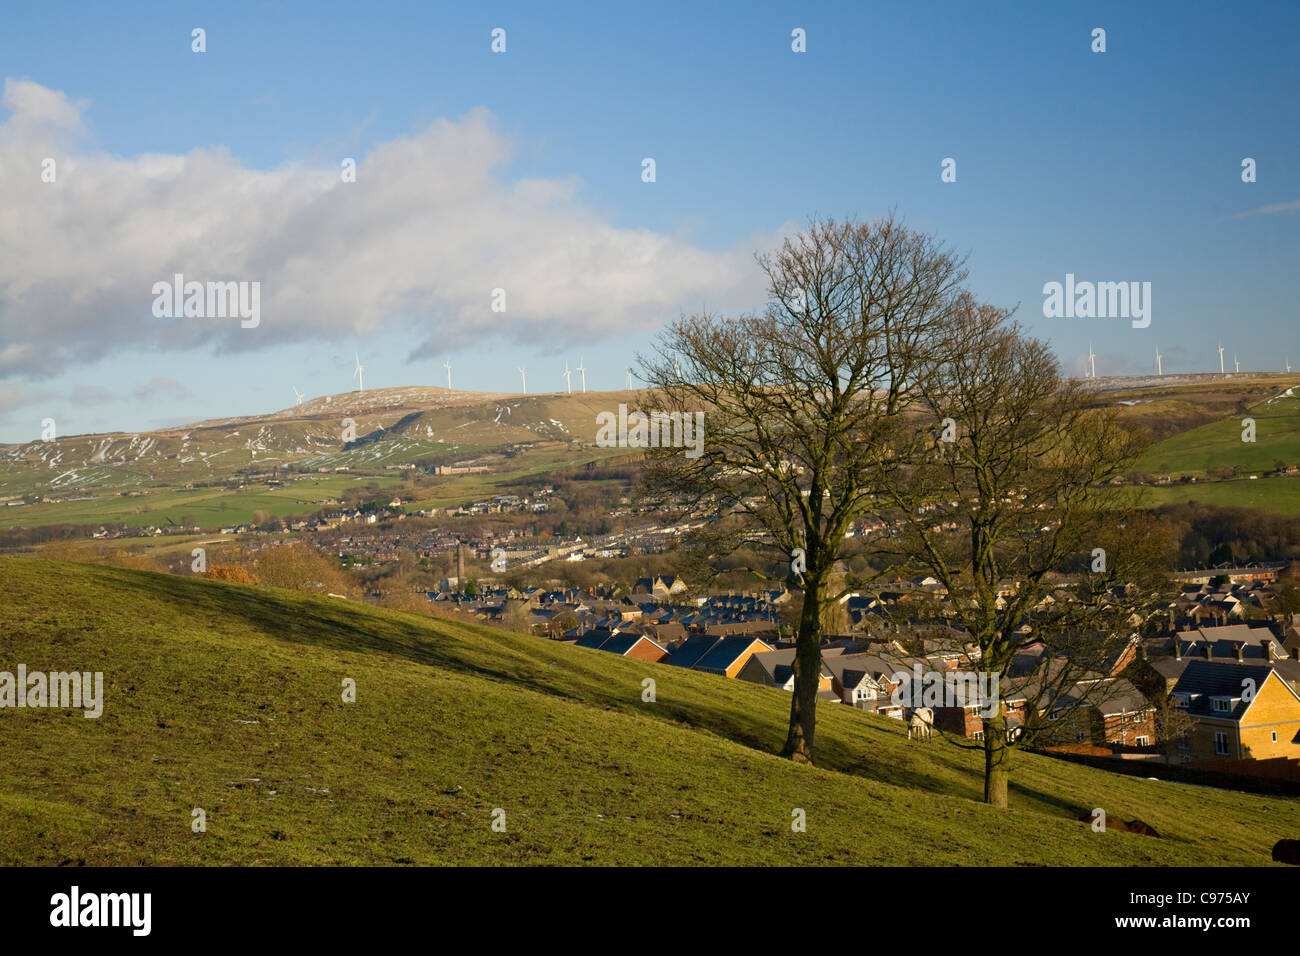 landscape of west pennine moors, near ramsbottom,lancashire,england, scout moor wind turbines in the distance - Stock Image